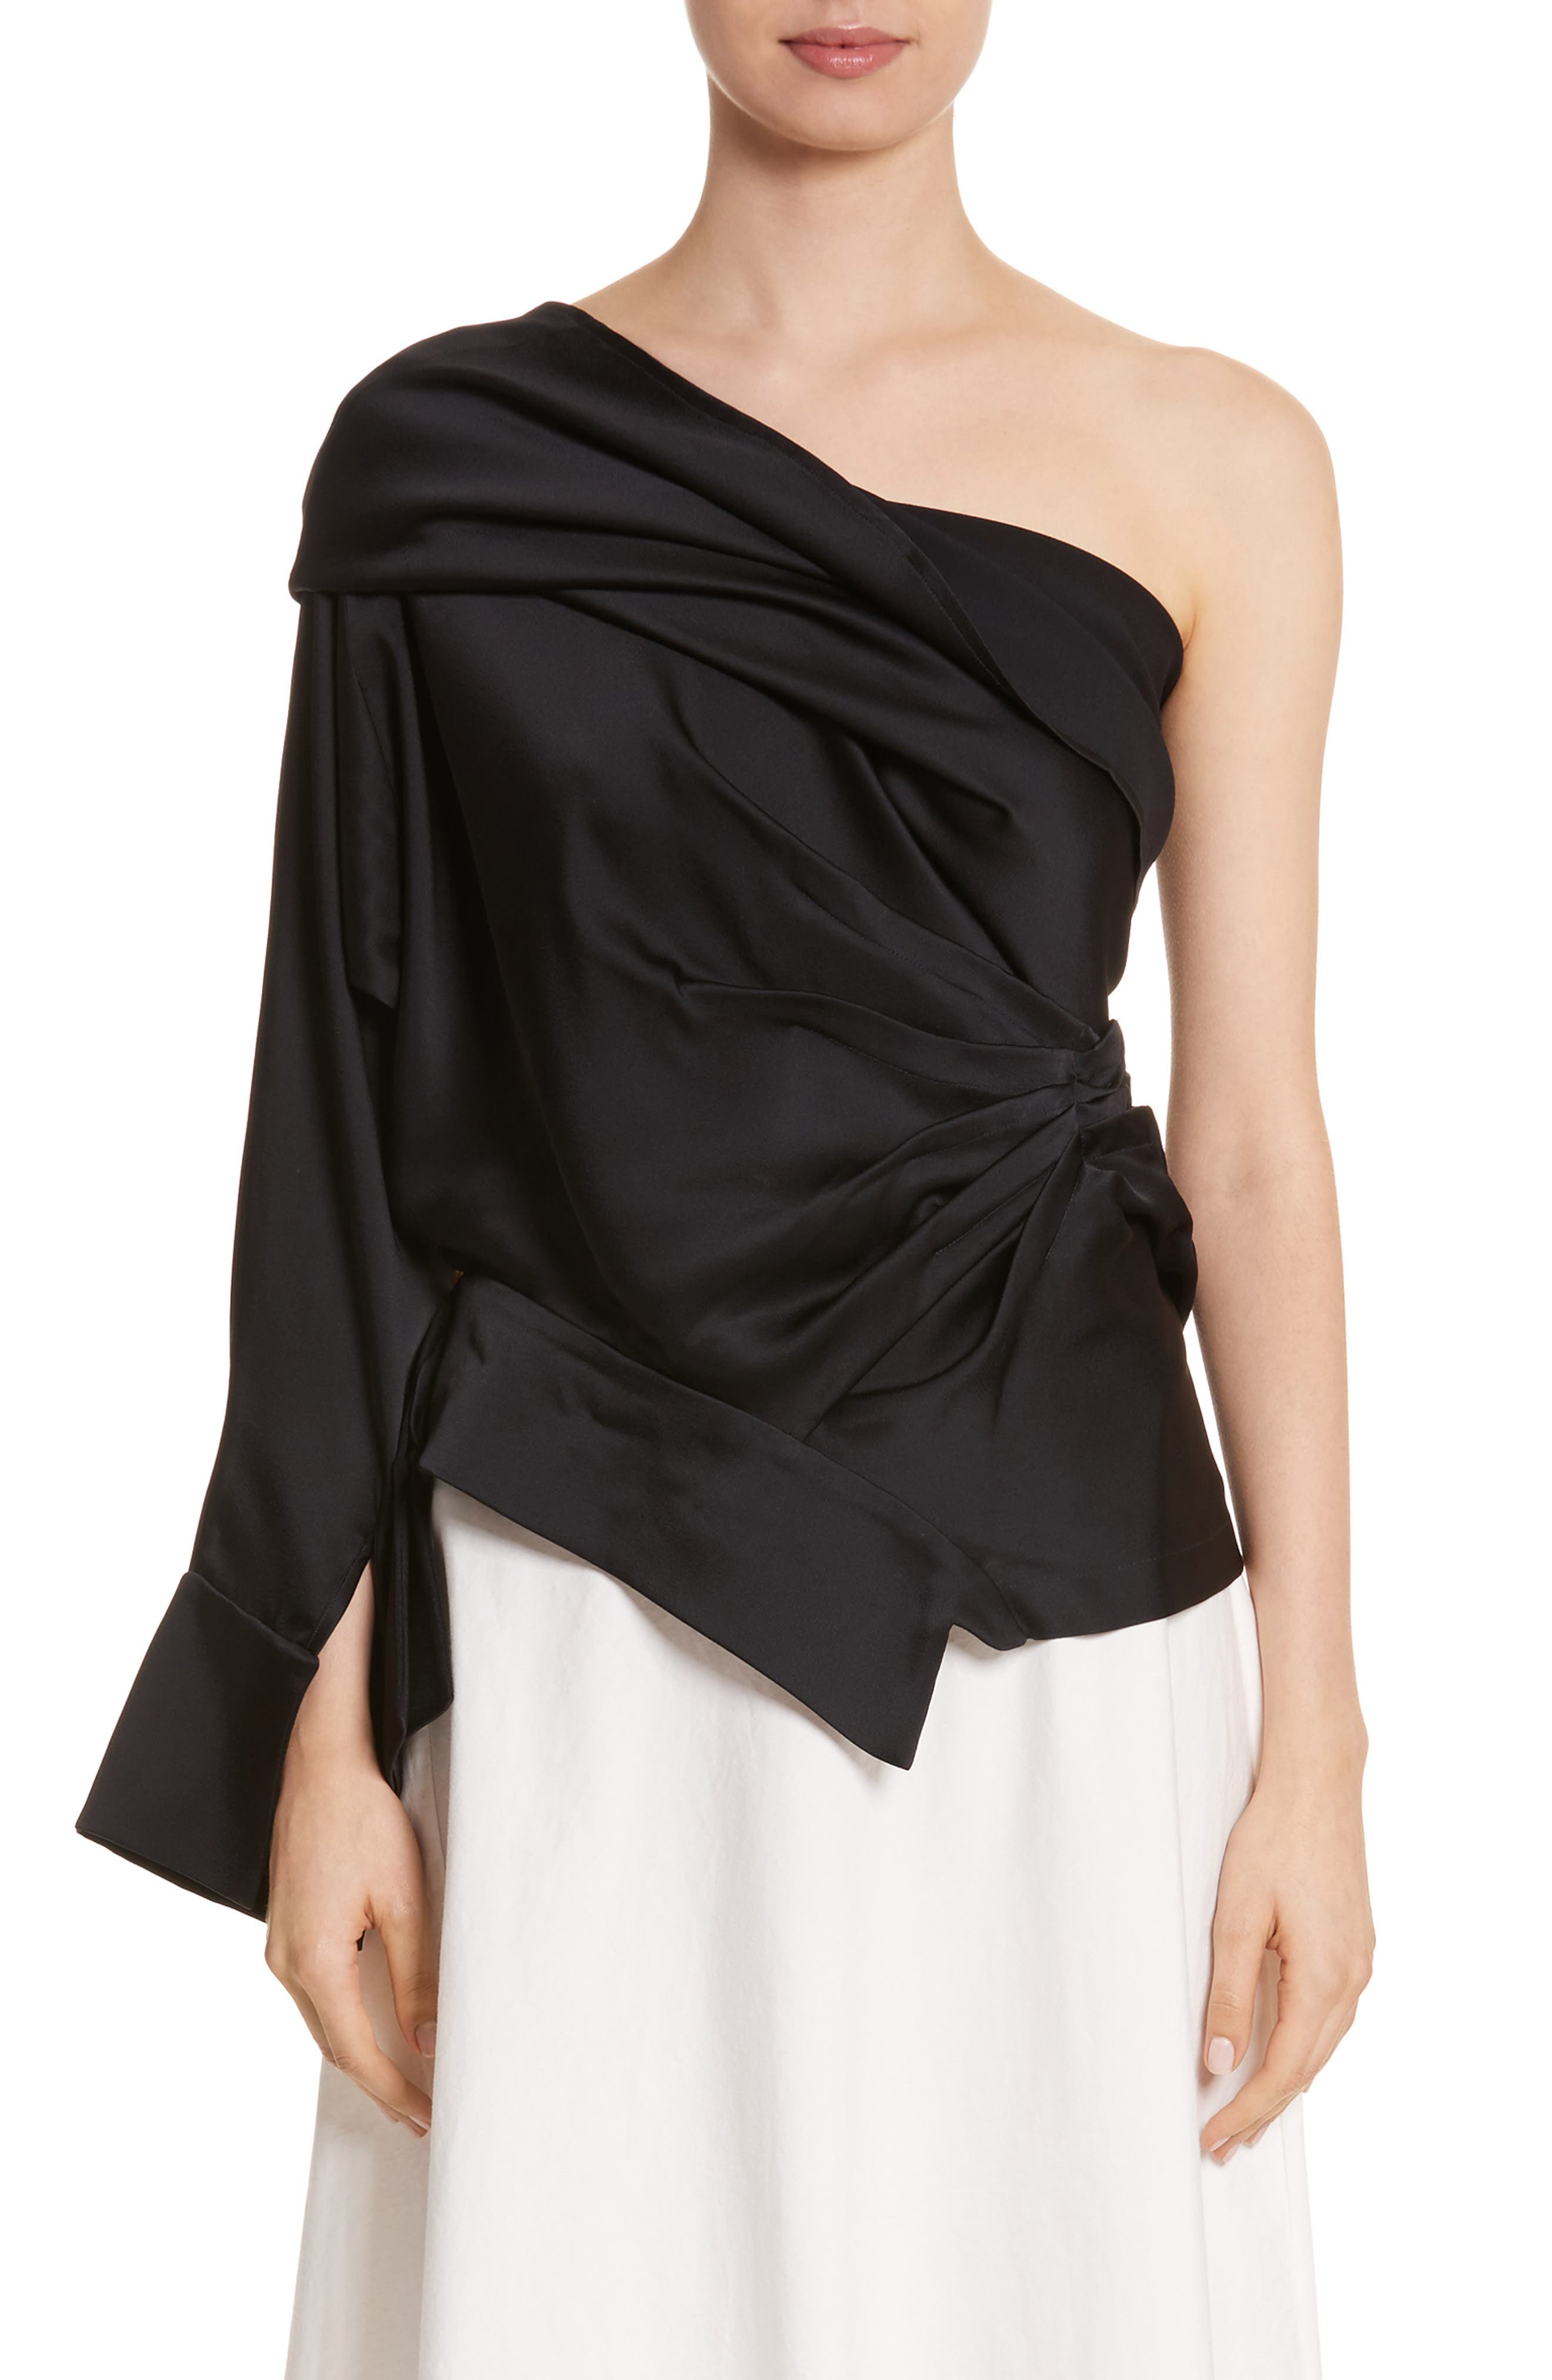 Alternate Image 1 Selected - A.W.A.K.E. Twisted One Shoulder Top